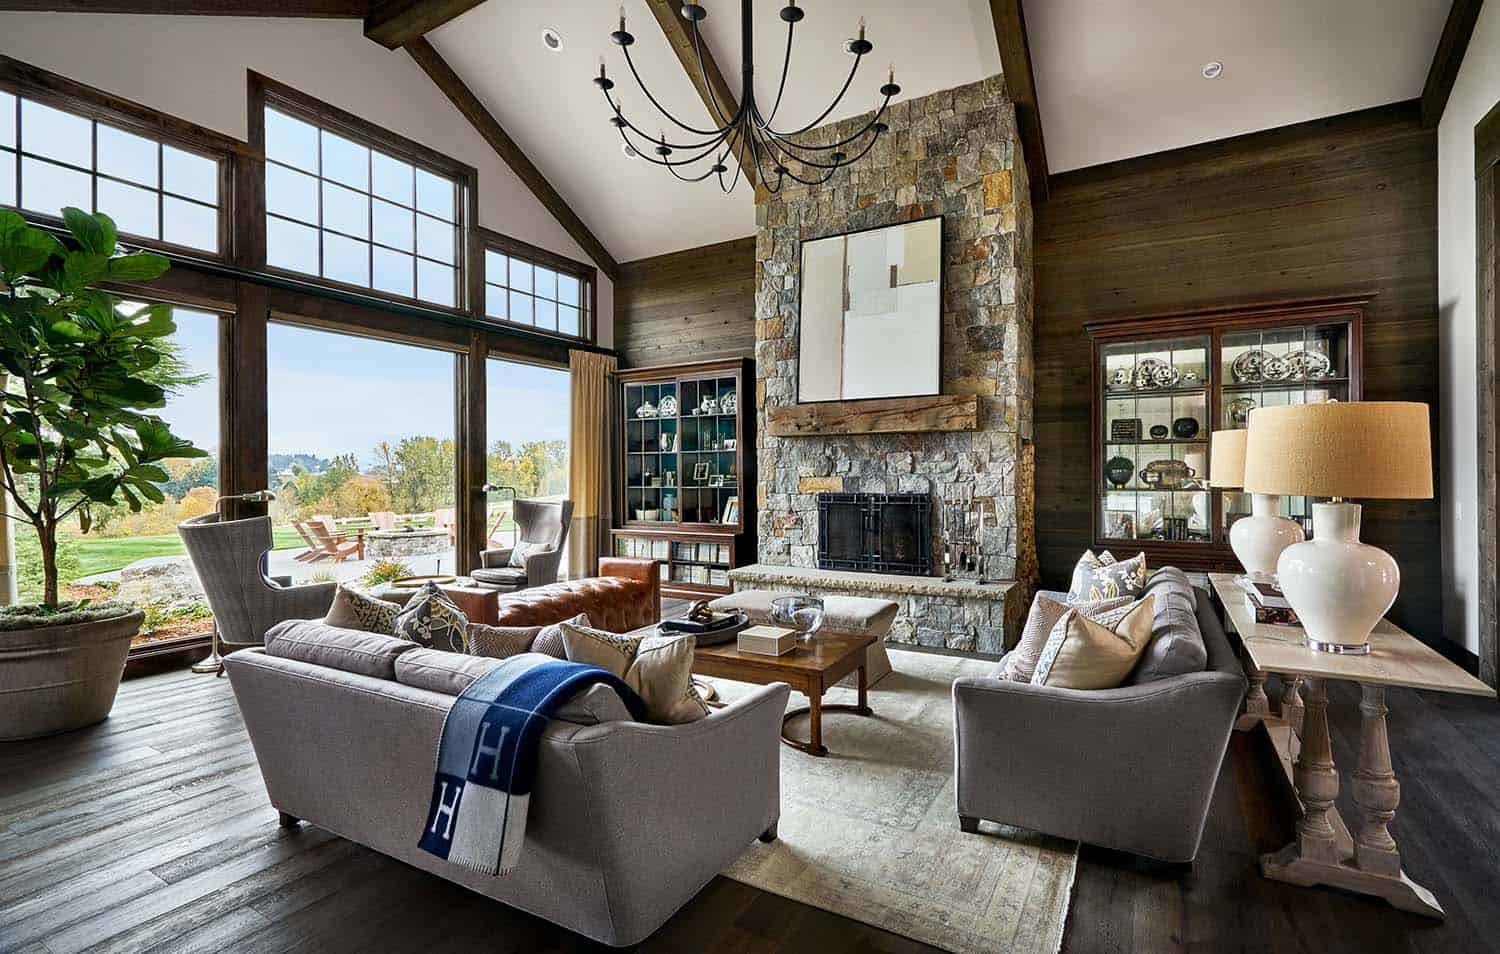 Contemporary rustic farmhouse with stunning living spaces in rural ...